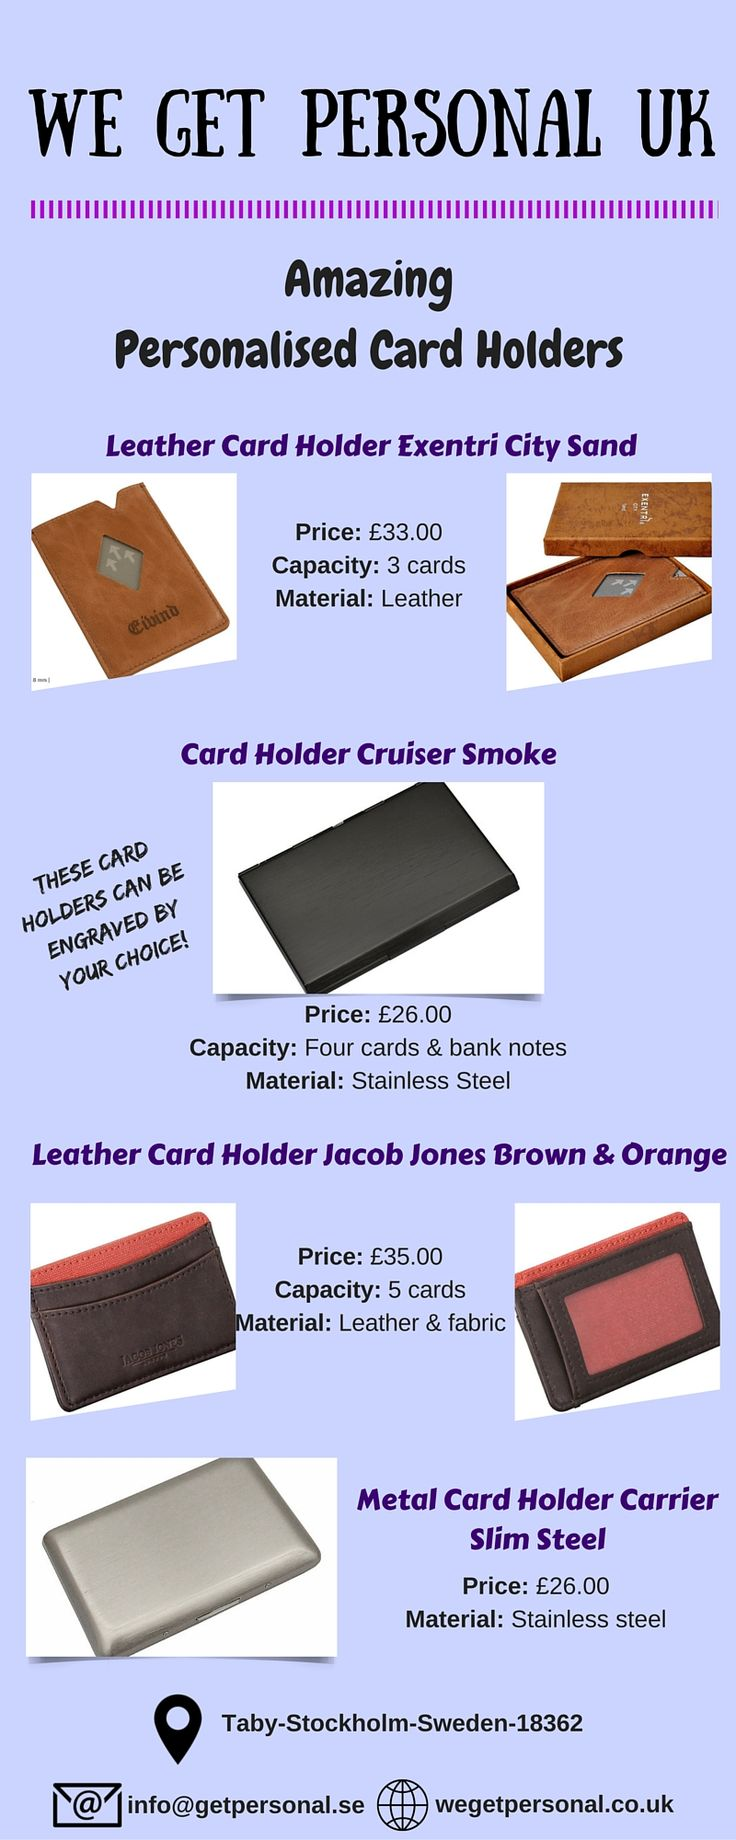 Gift personalised card holders to your loved ones which can be engraved by your choice of text, font and size. We Get Personal UK offers variety of personalised card holders and many more gifts. Add your personal touch by getting it engraved. Shop for your favorite personalised items by visiting us at wegetpersonal.co.uk  #cardholder #LeatherCardHolder #personalisedcardholder #engravedcardholder